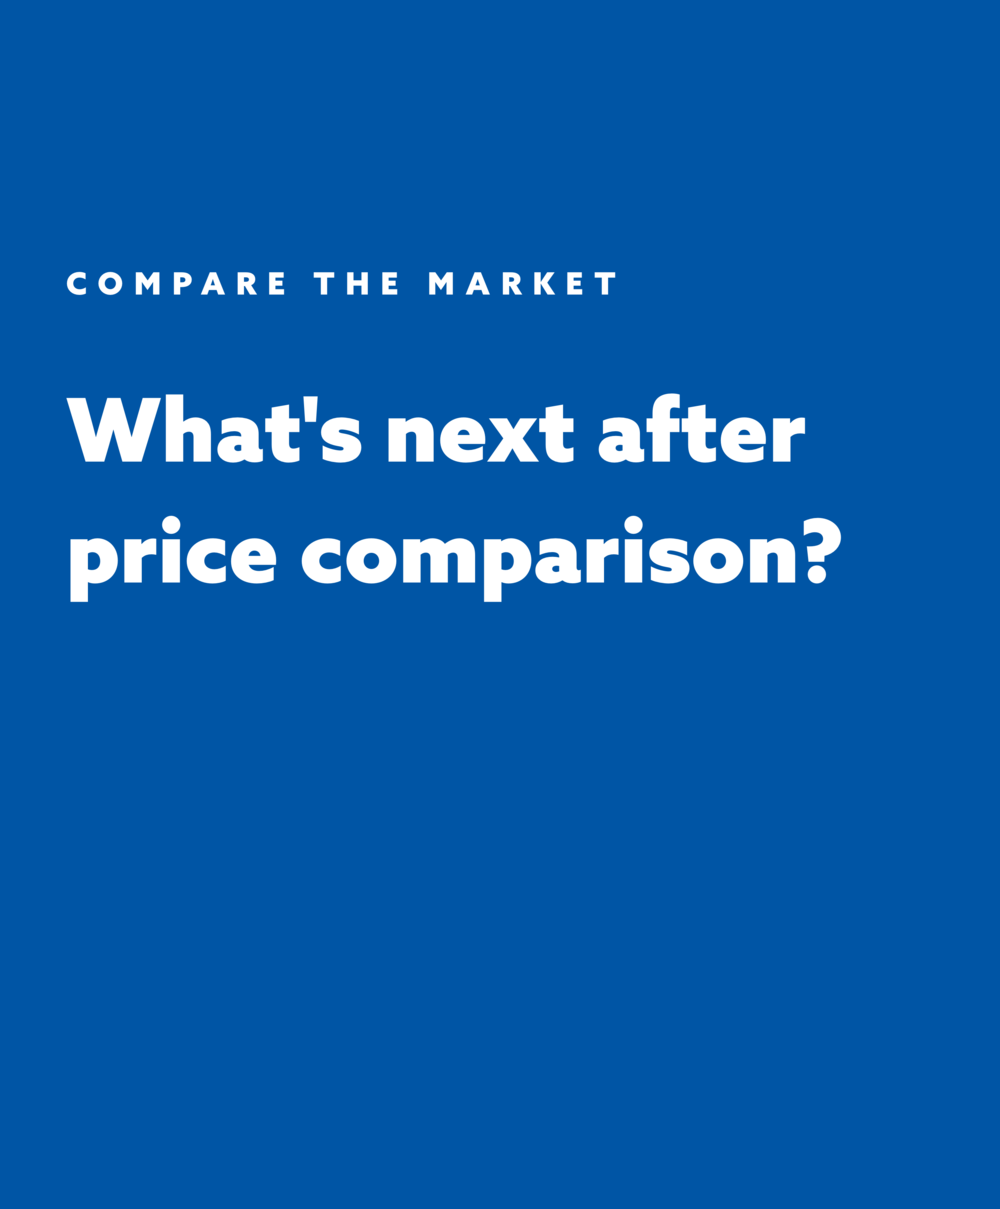 COMPARE THE MARKET.png